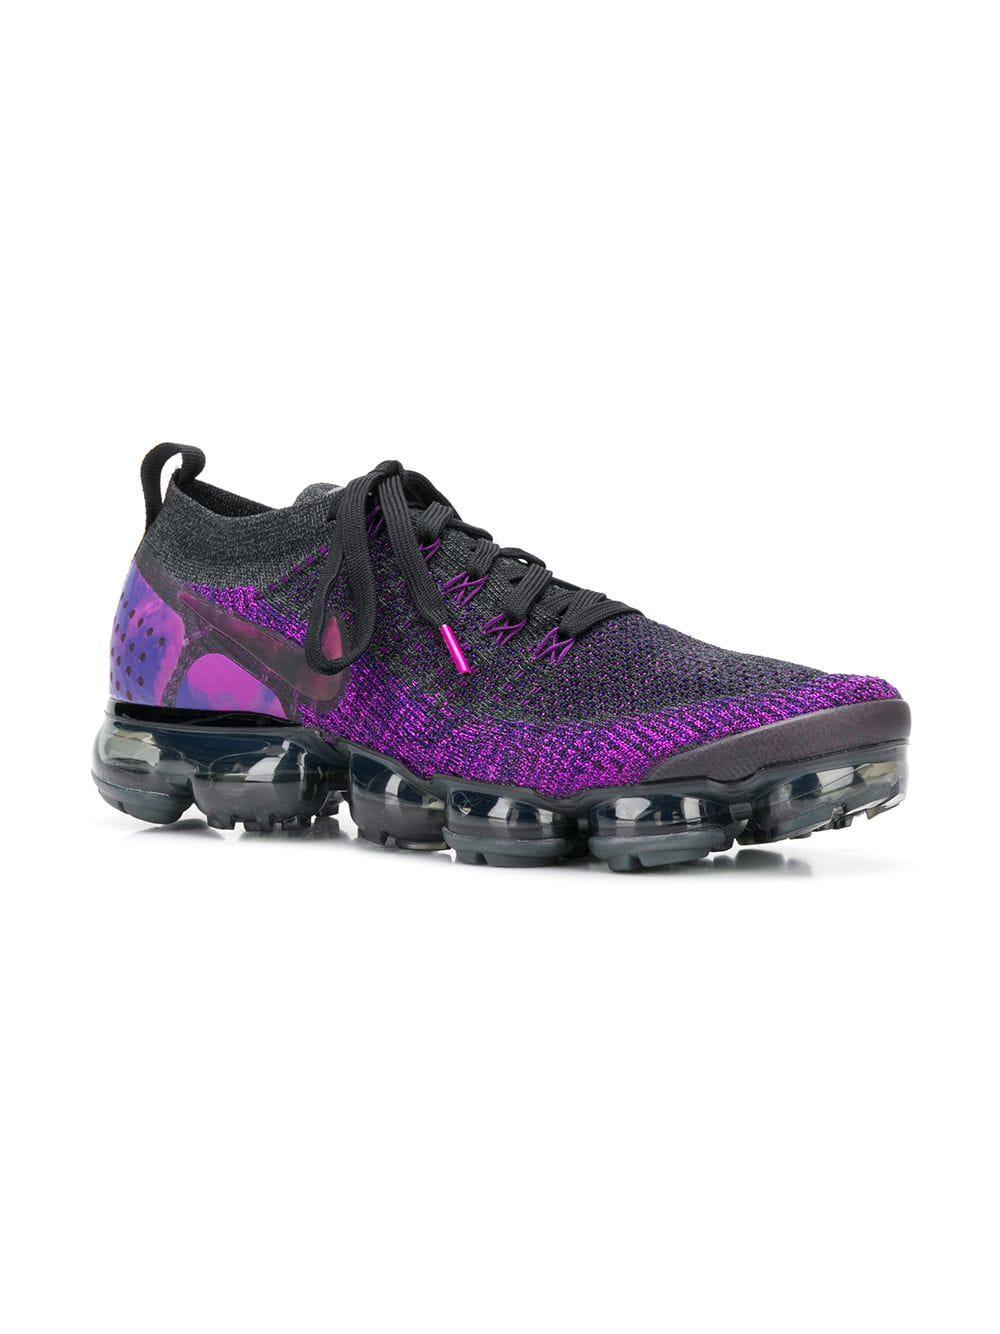 2f1dfbe5ebe627 Lyst - Nike Air Vapormax Flyknit 2 Sneakers in Purple for Men - Save 11%